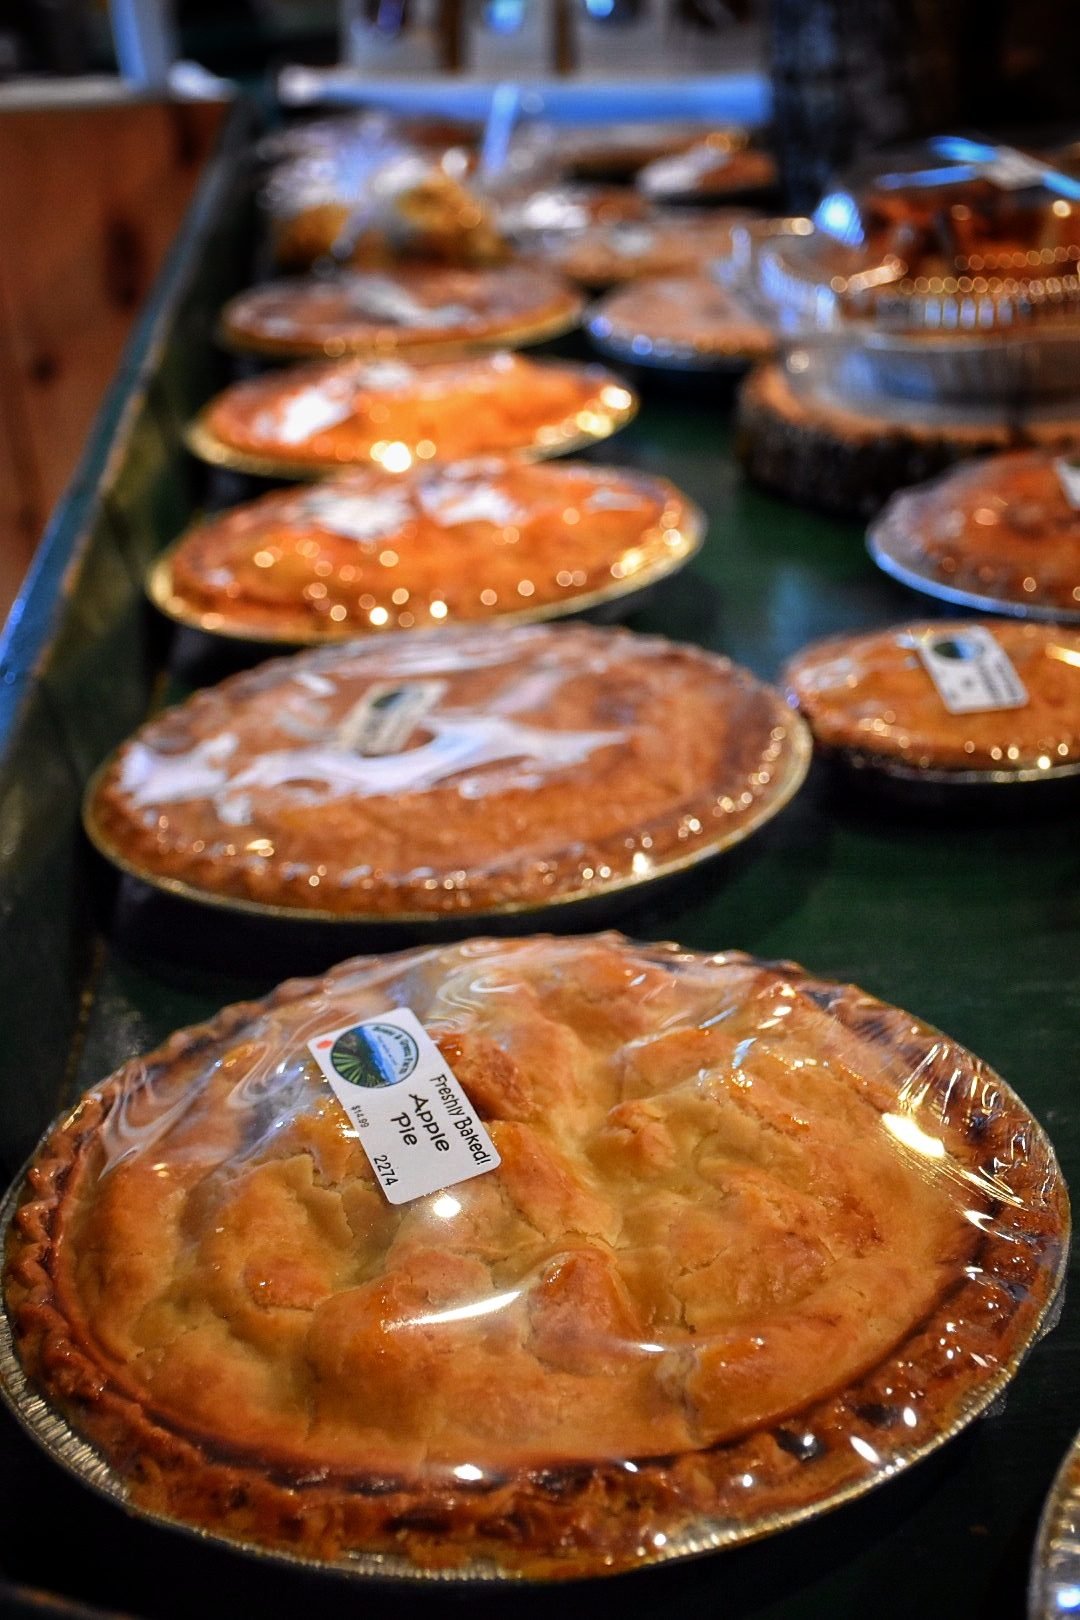 Beans & Greens Farm - bakery pies